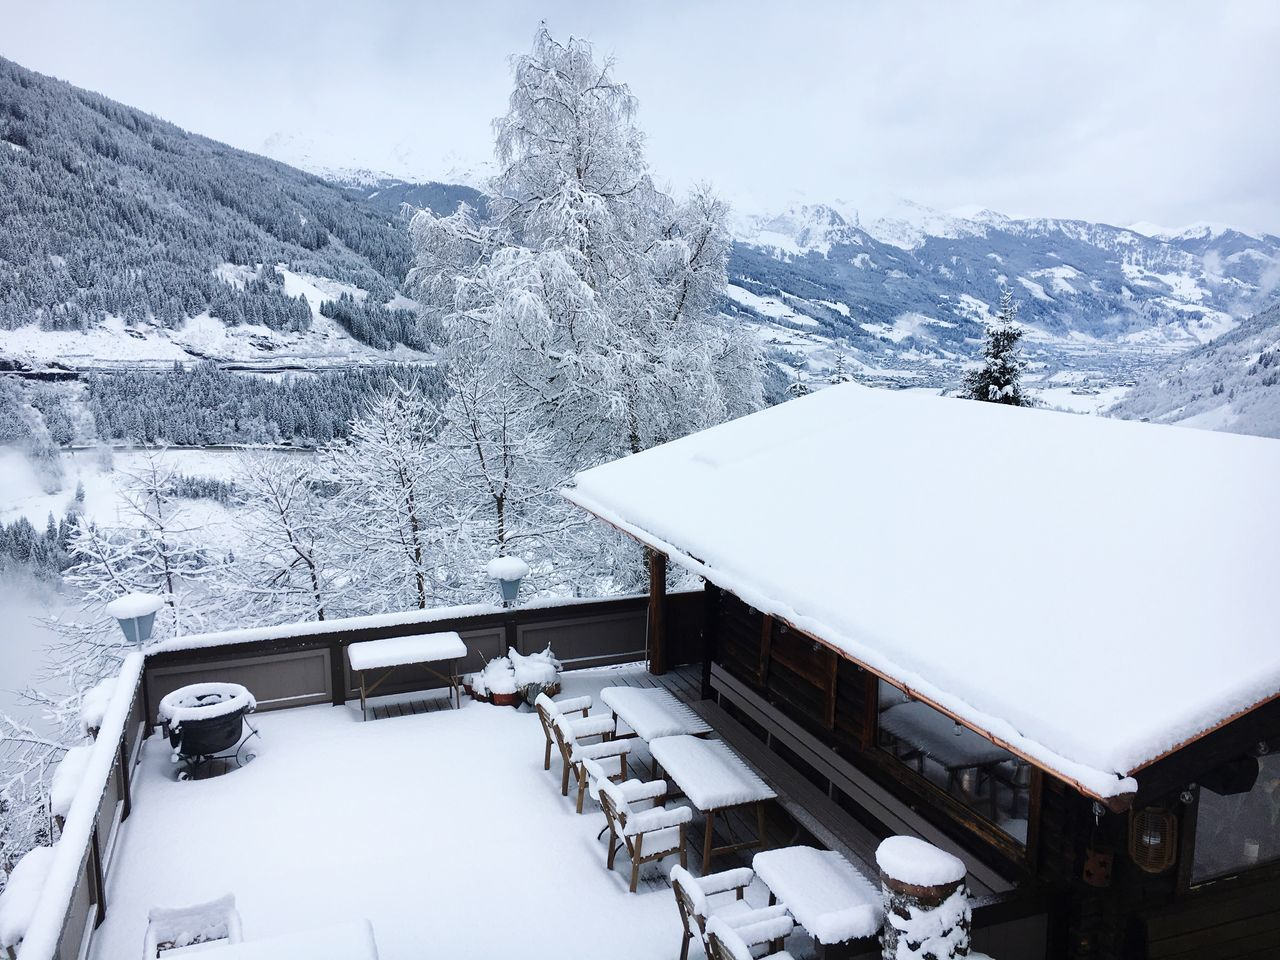 The châlet. Snow Winter Cold Temperature Mountain White Color Nature Weather Architecture Scenics Built Structure Beauty In Nature Outdoors Day No People Sky Alm Chalet Cabin In The Woods